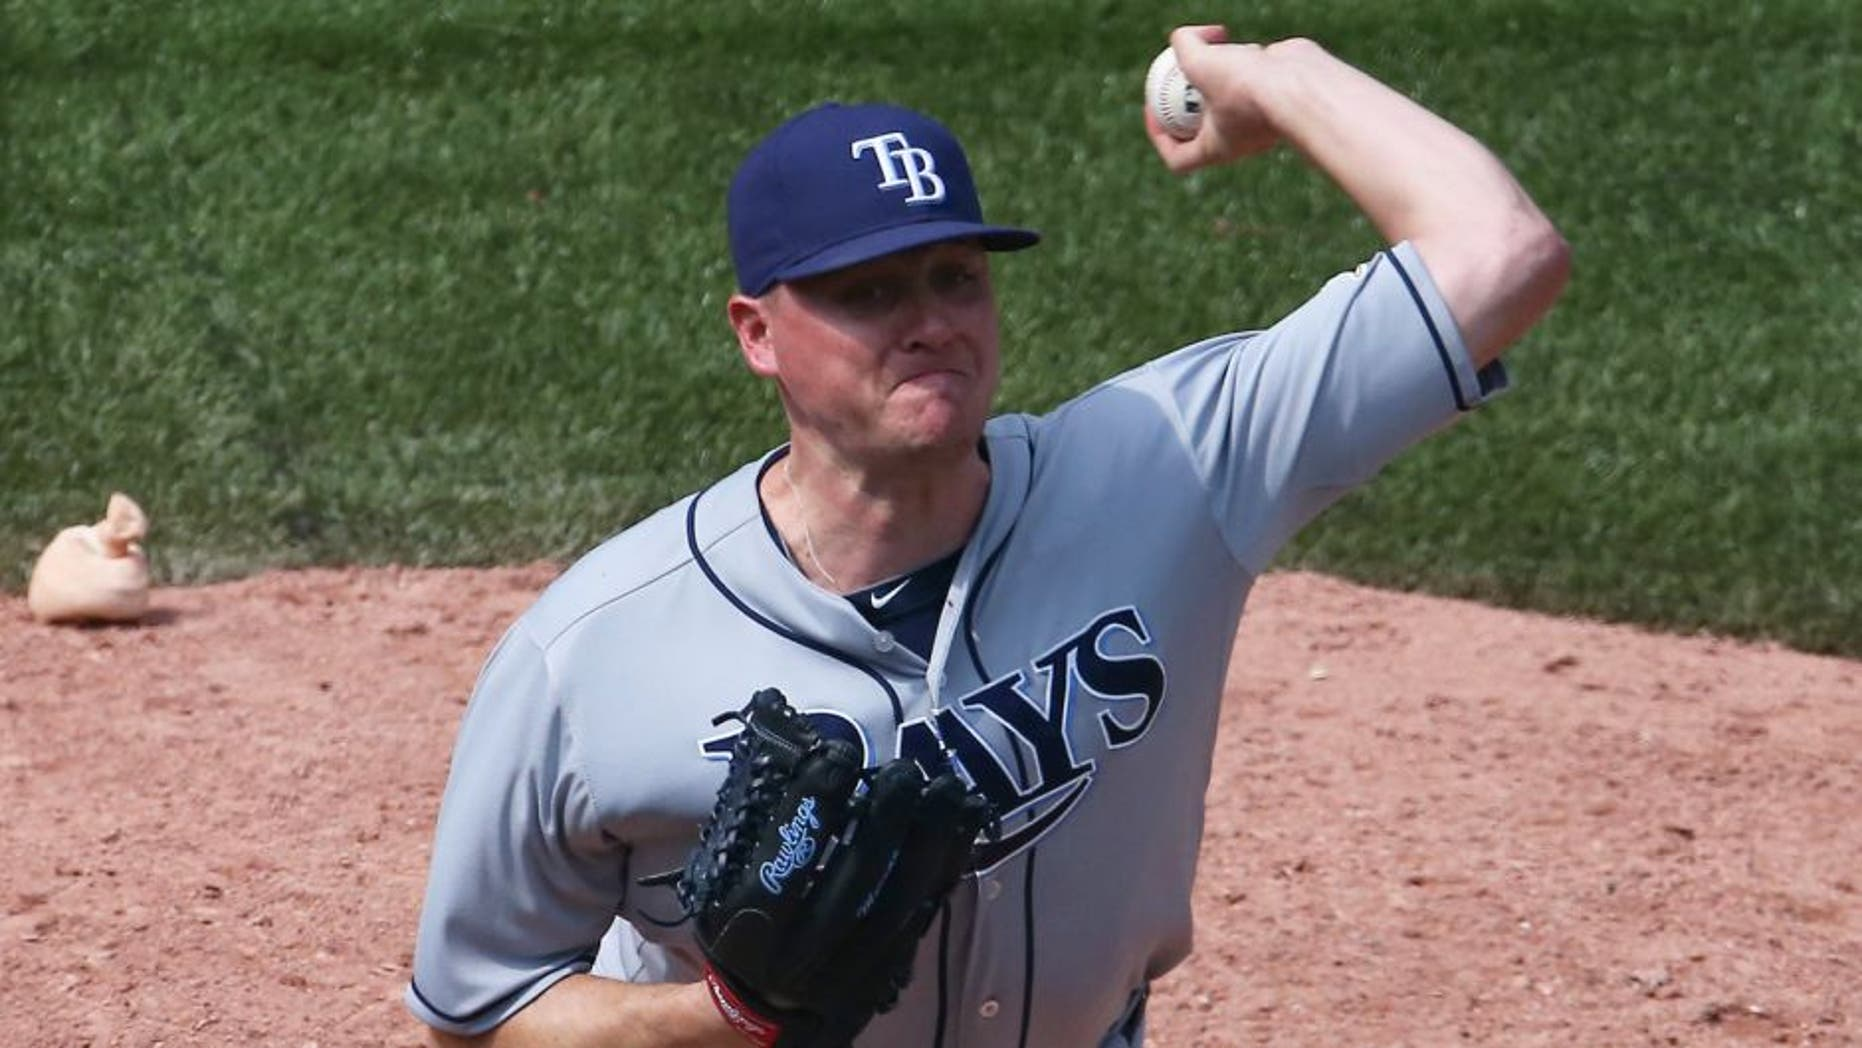 TORONTO, CANADA - JULY 18: Jake McGee #57 of the Tampa Bay Rays delivers a pitch in the ninth inning during MLB game action against the Toronto Blue Jays on July 18, 2015 at Rogers Centre in Toronto, Ontario, Canada. (Photo by Tom Szczerbowski/Getty Images)